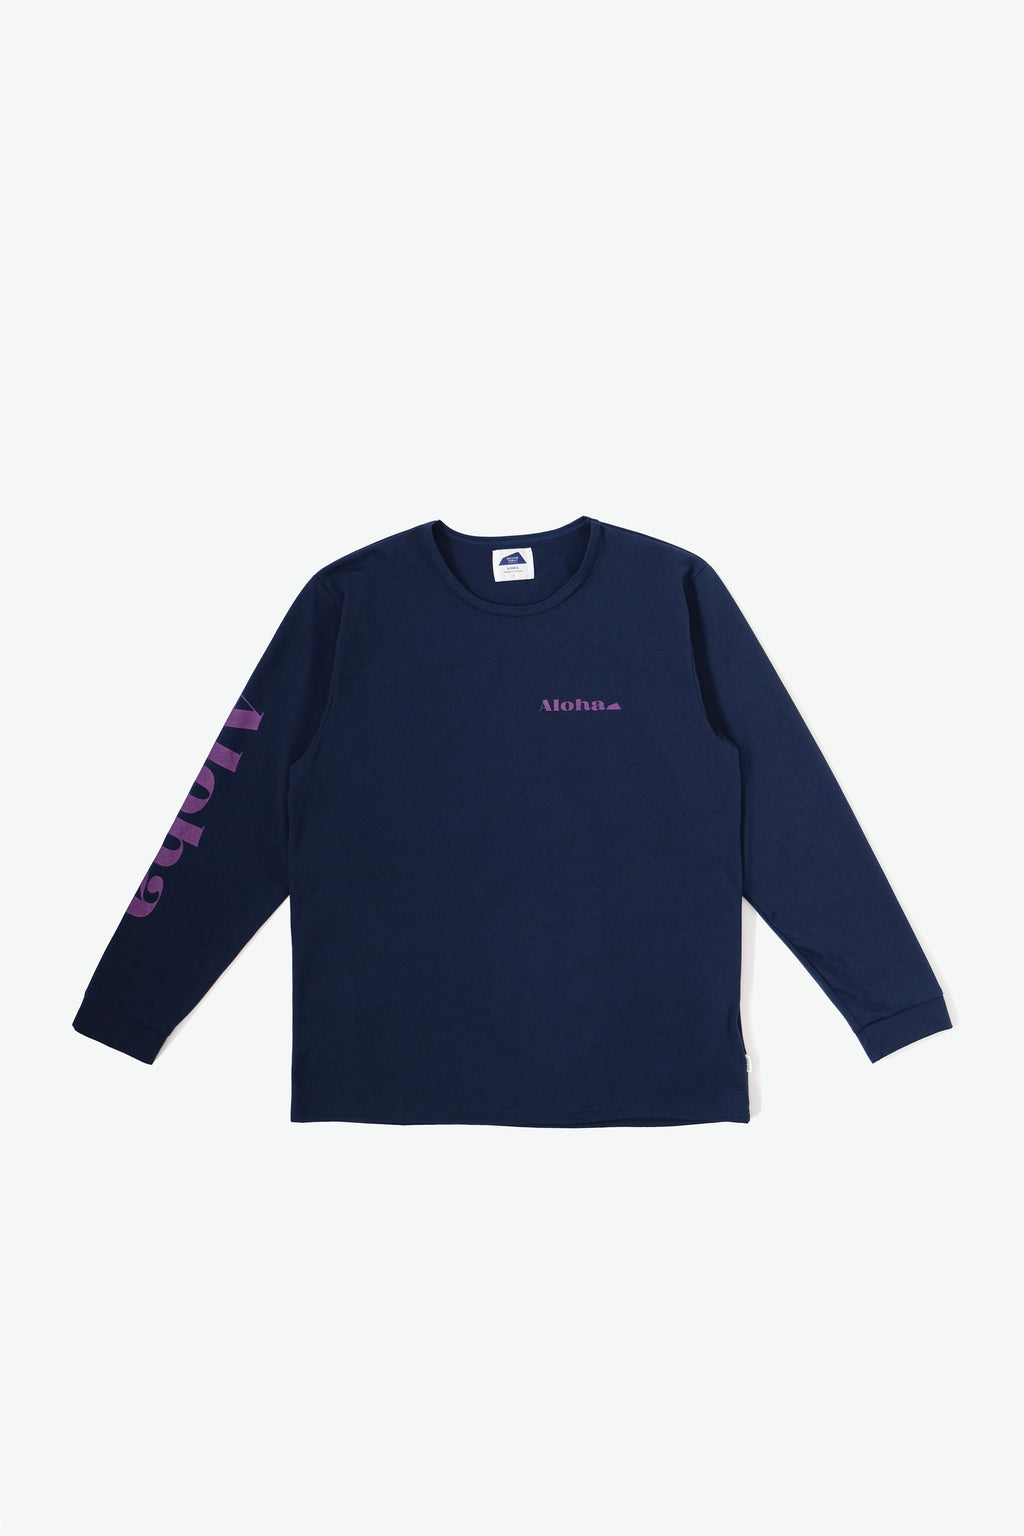 Long Sleeve Surf T-Shirt - Aloha - Navy